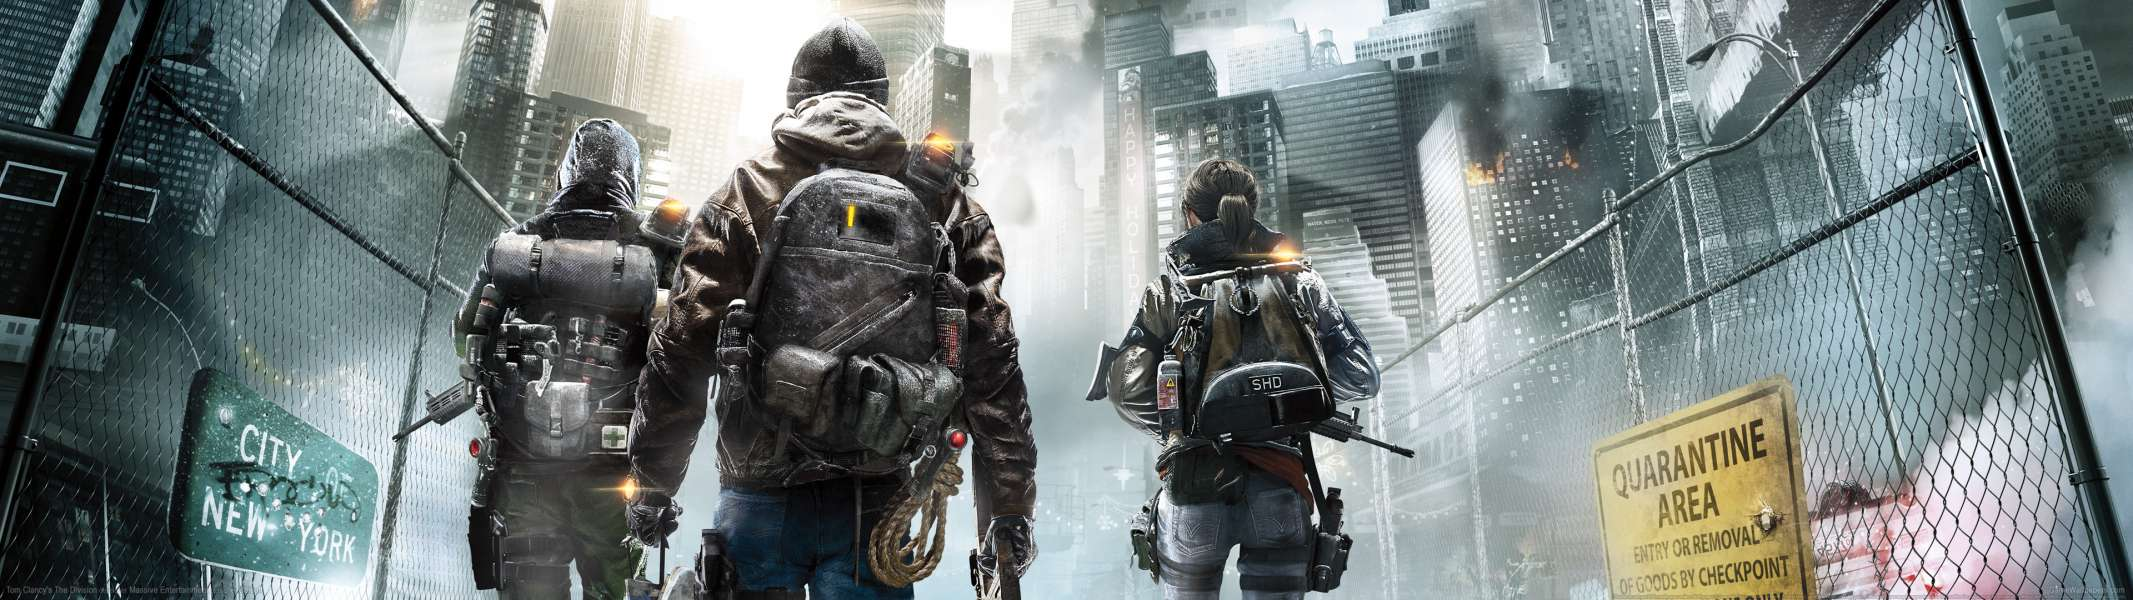 Tom Clancy's The Division dual screen wallpaper or background